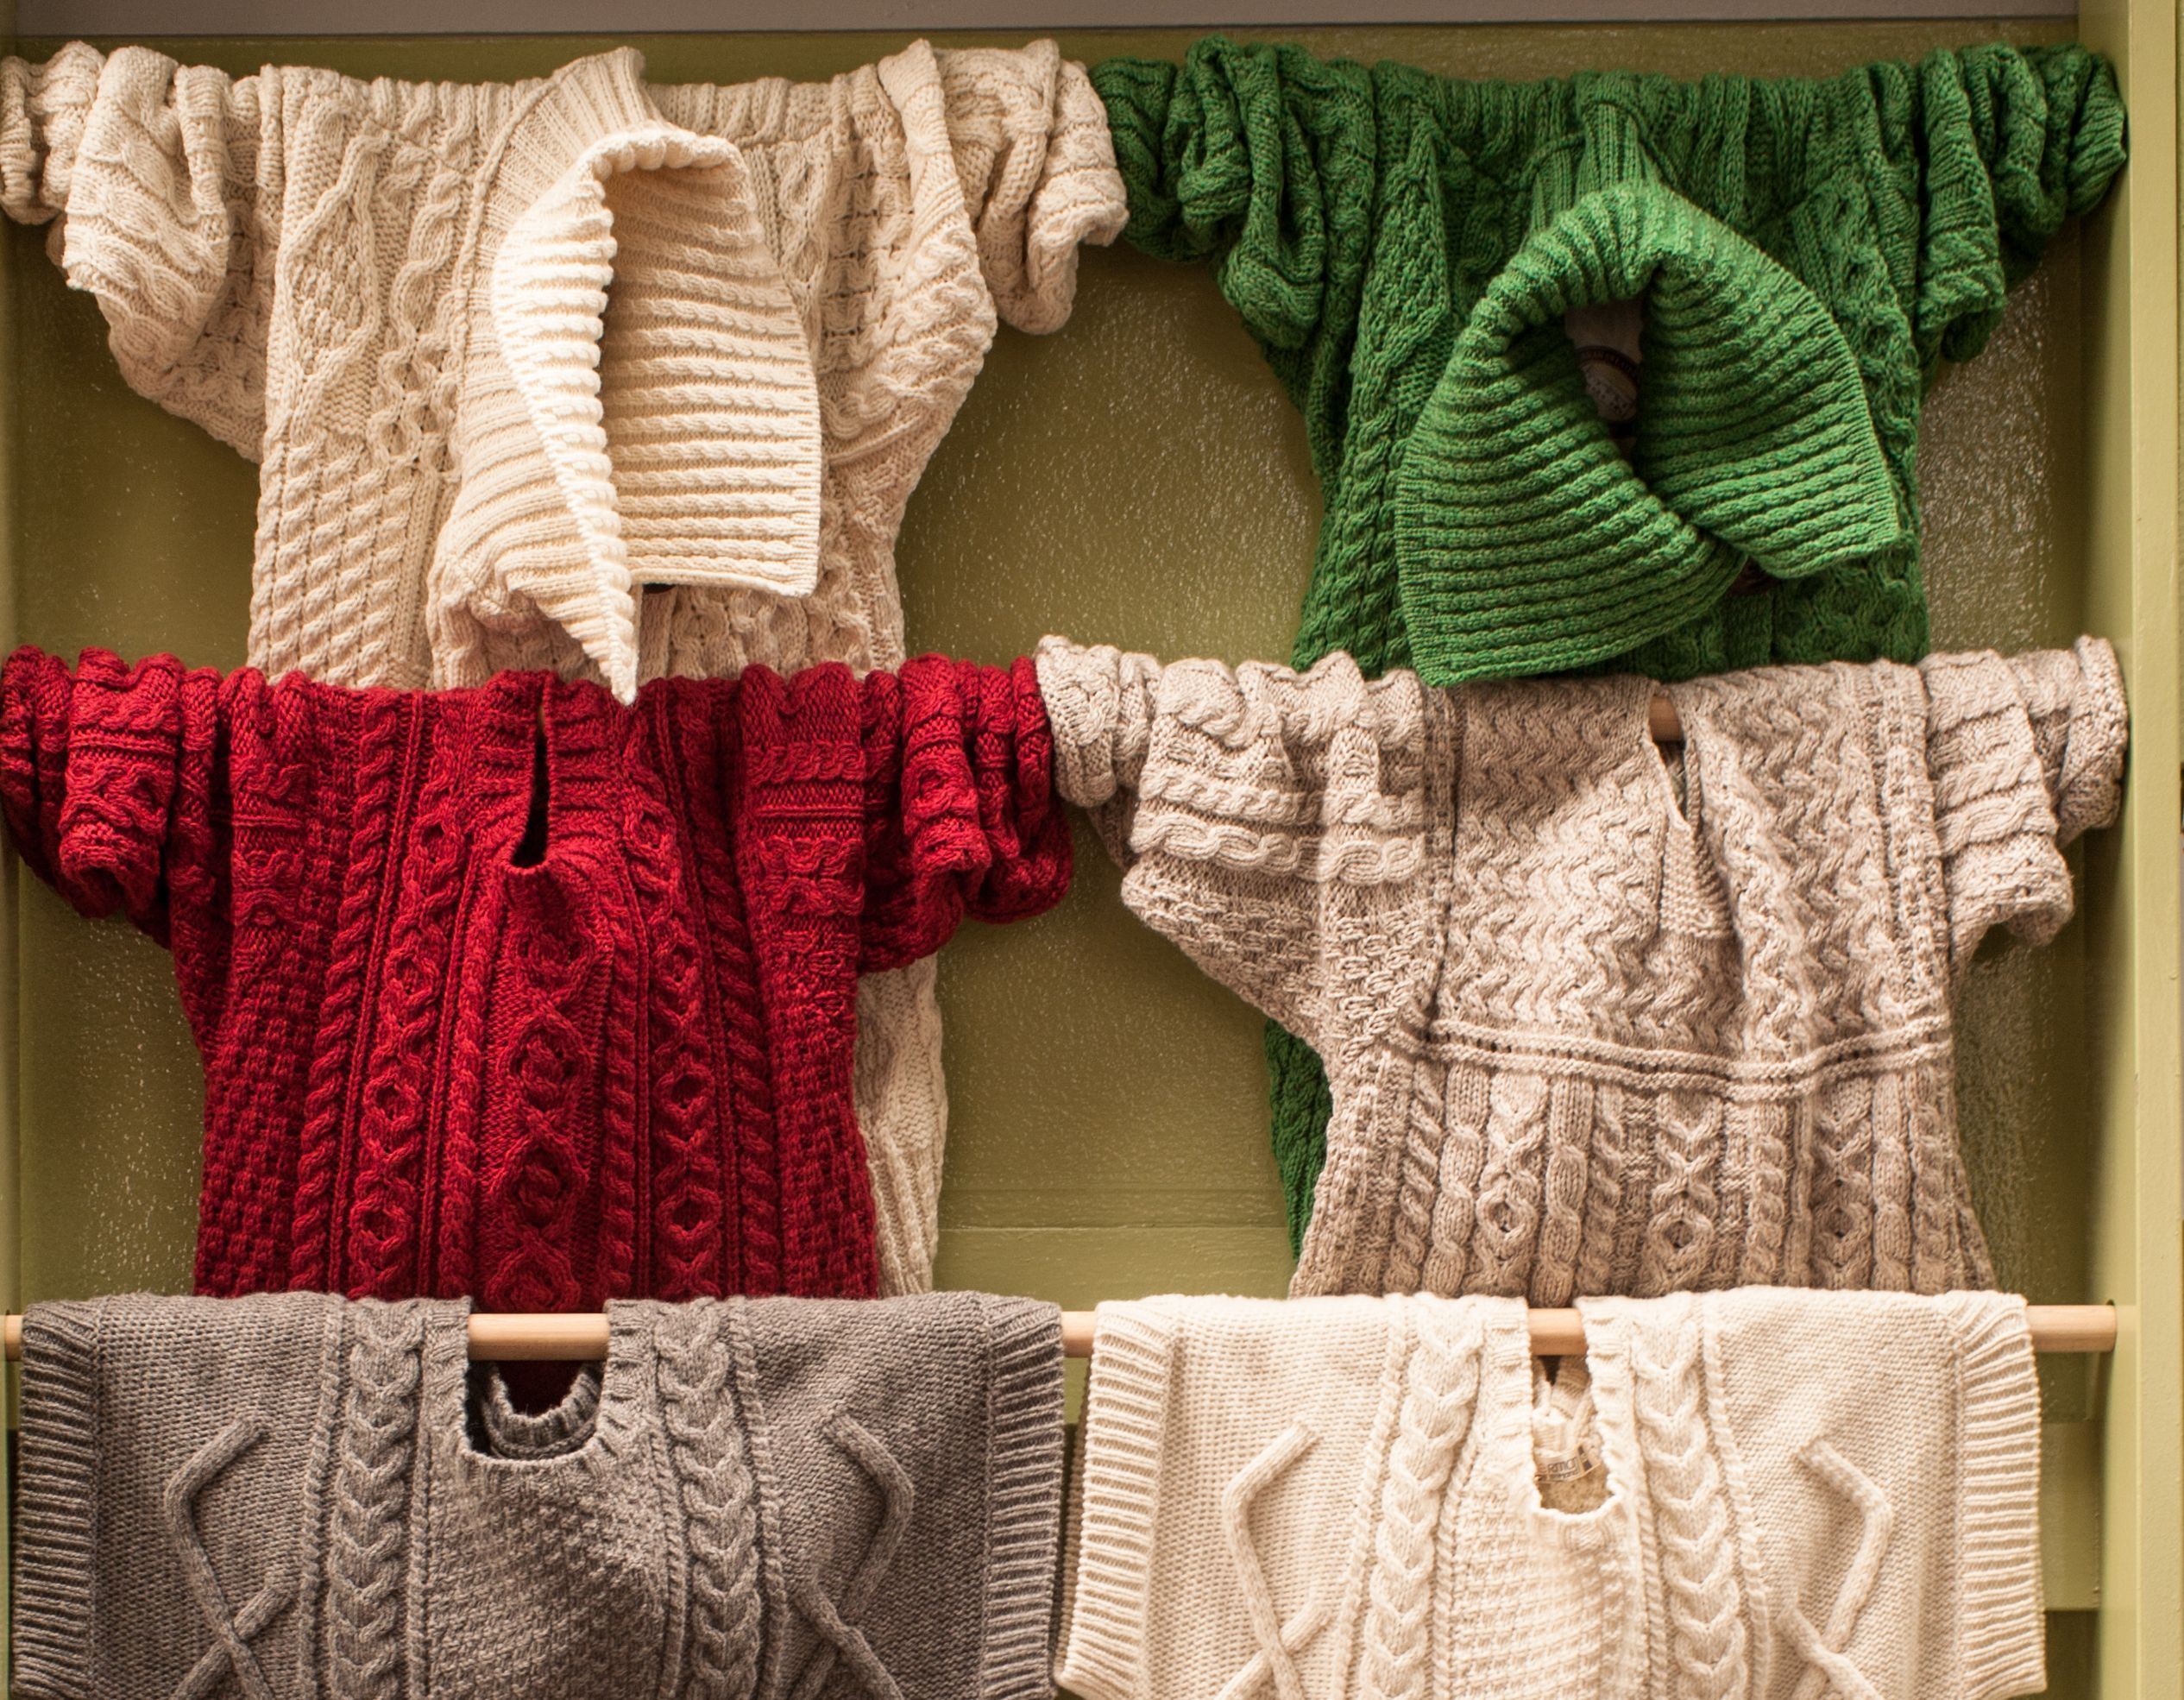 The real deal Aran sweaters in the middle of Galway city